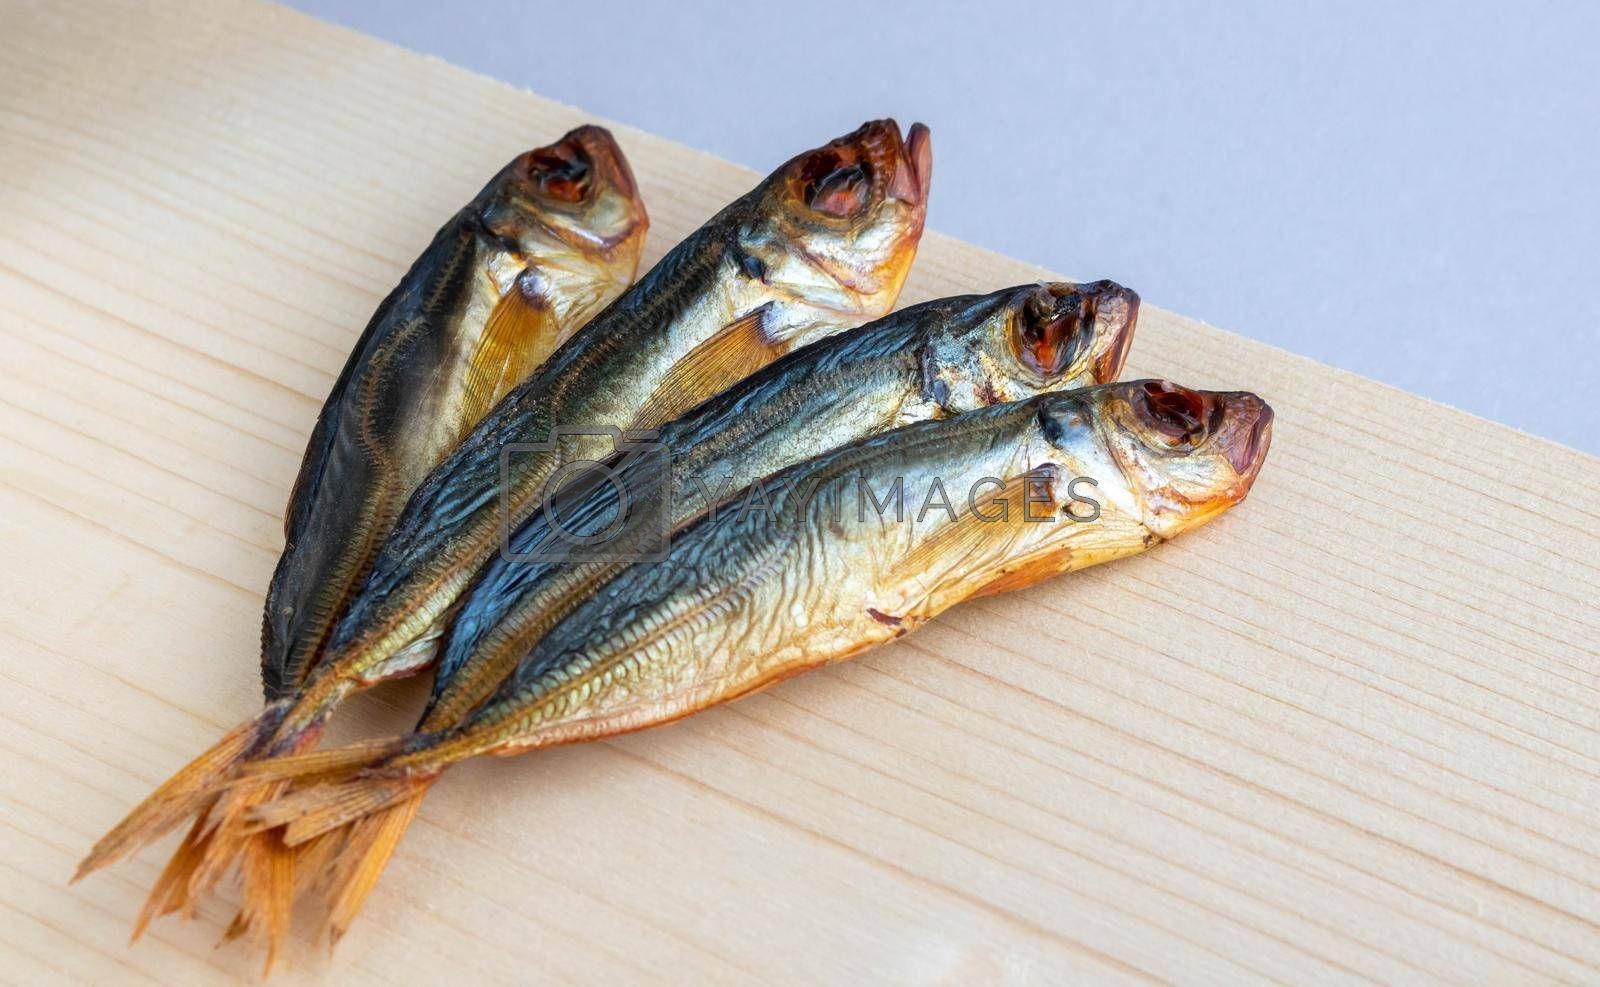 Horse mackerel fish, cold smoked. Smoked fish close-up on a wooden background .Food industry.